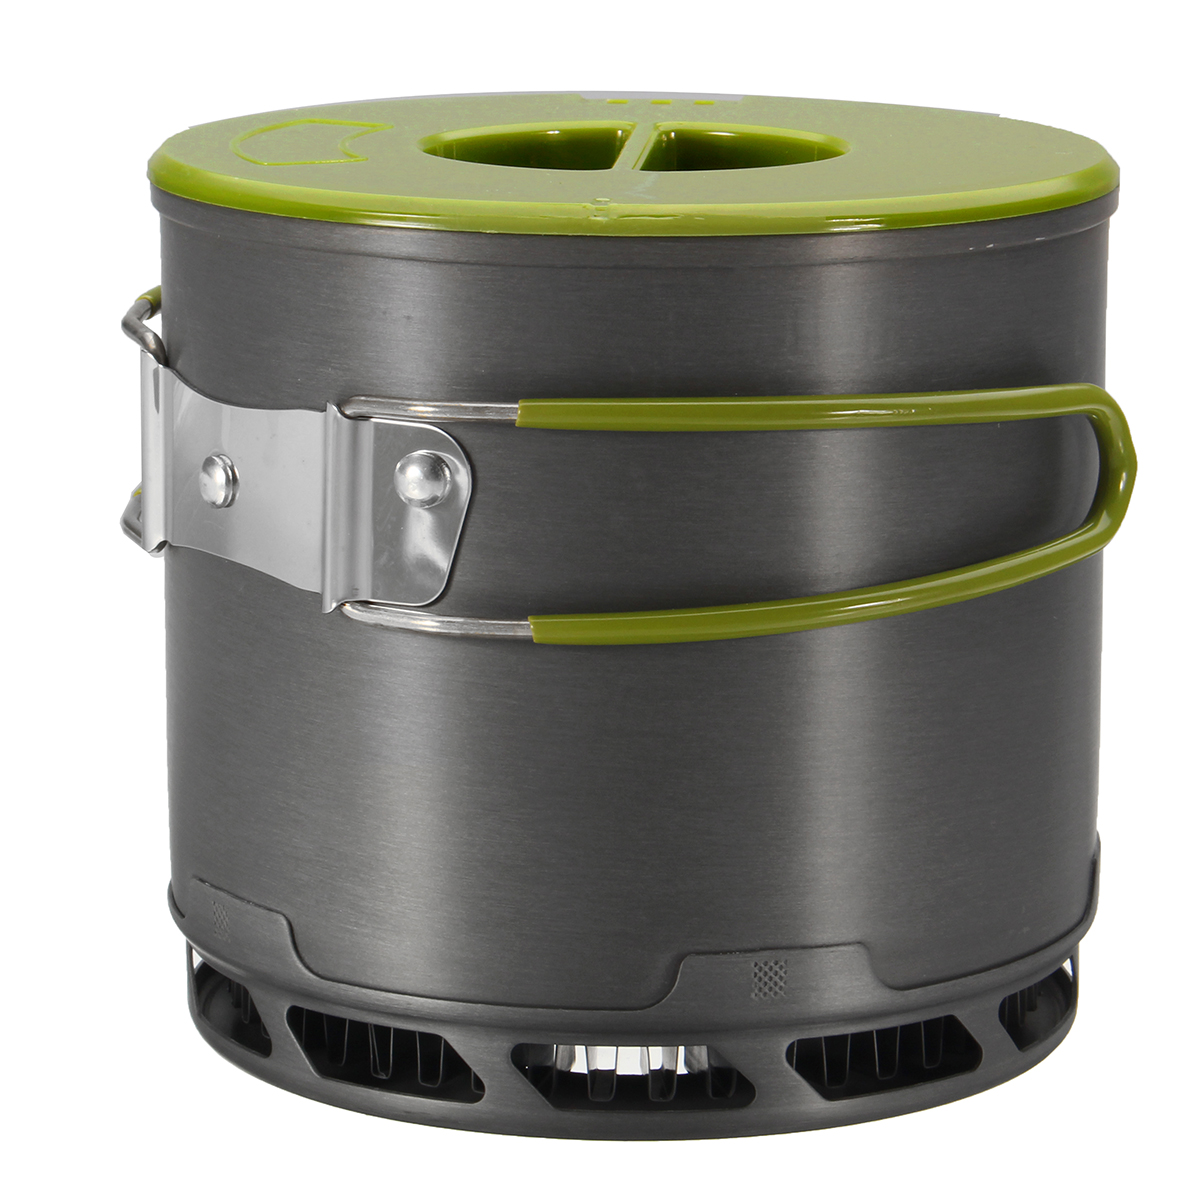 IPRee 1.2L Outdoor Heat Collecting Exchanger Pot Campin